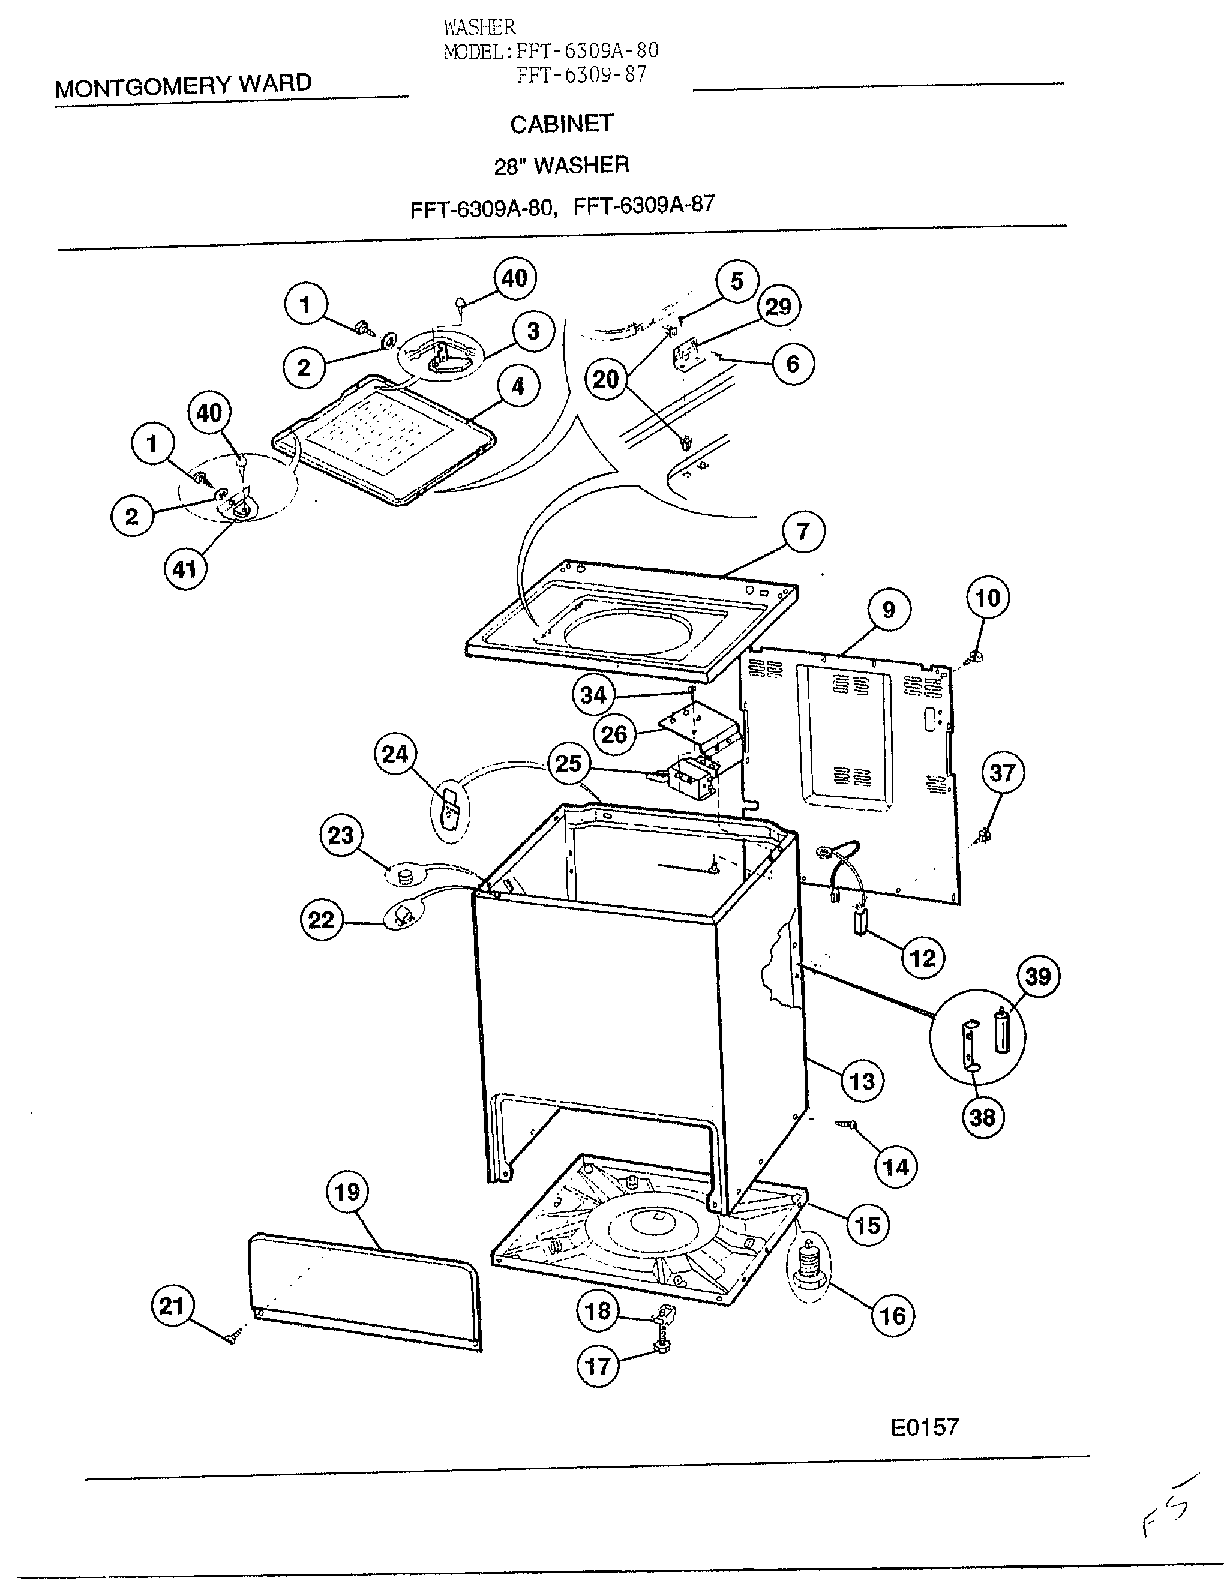 frigidaire front load washer parts diagram power wheels wiring model 6309a sears partsdirect